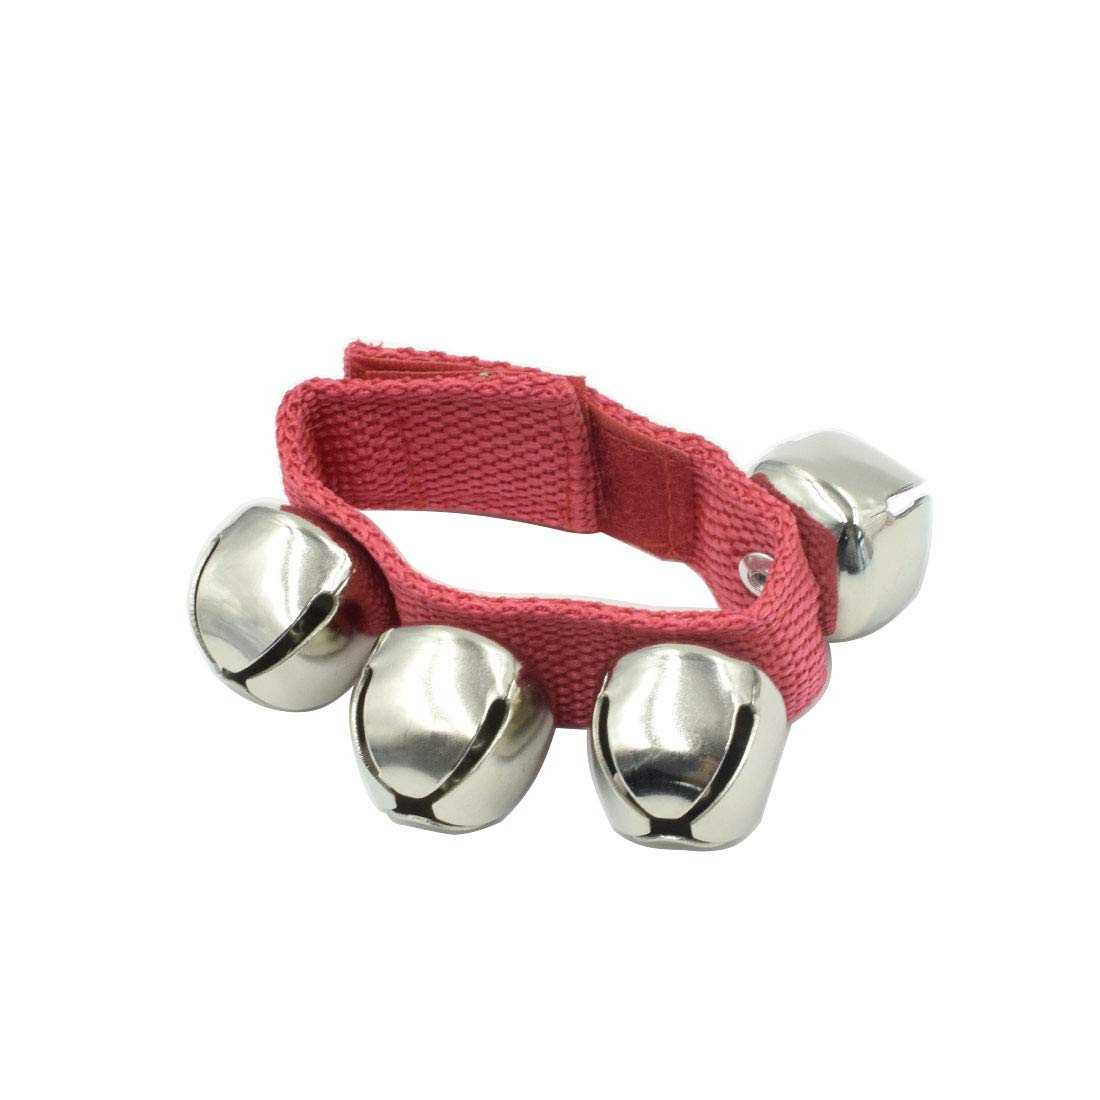 Pair Red A-Star Small Wrist Jingle Sleigh Bells with Nylon Strap